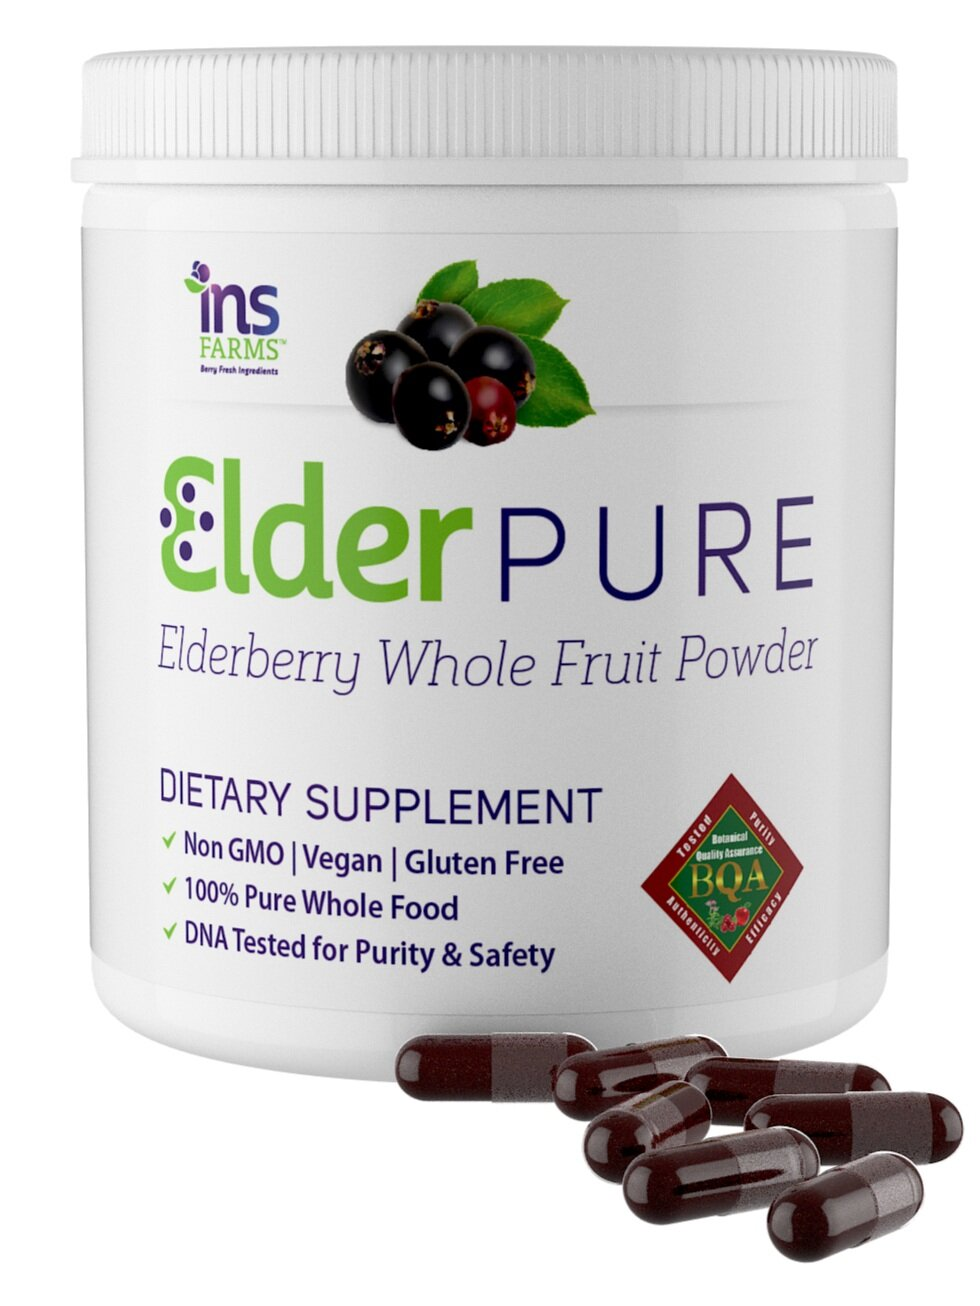 ElderPure+Whole+Fruit+Powder+Render.jpg